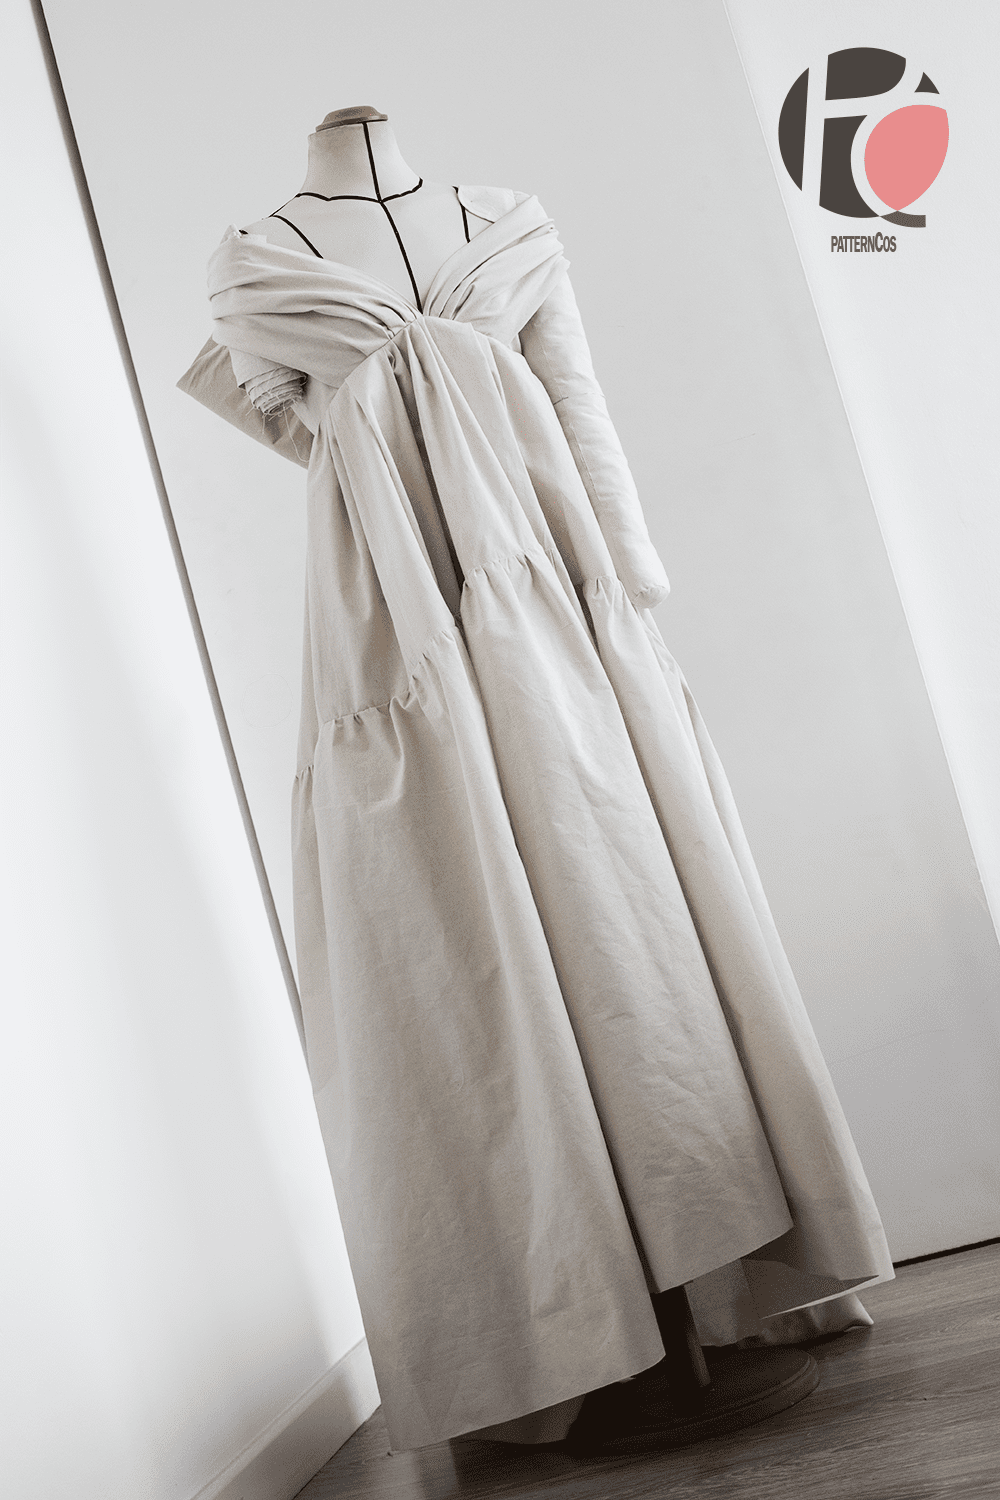 Marc_Jacobs_dress_inspired_photo_1_PatternCos_Academia